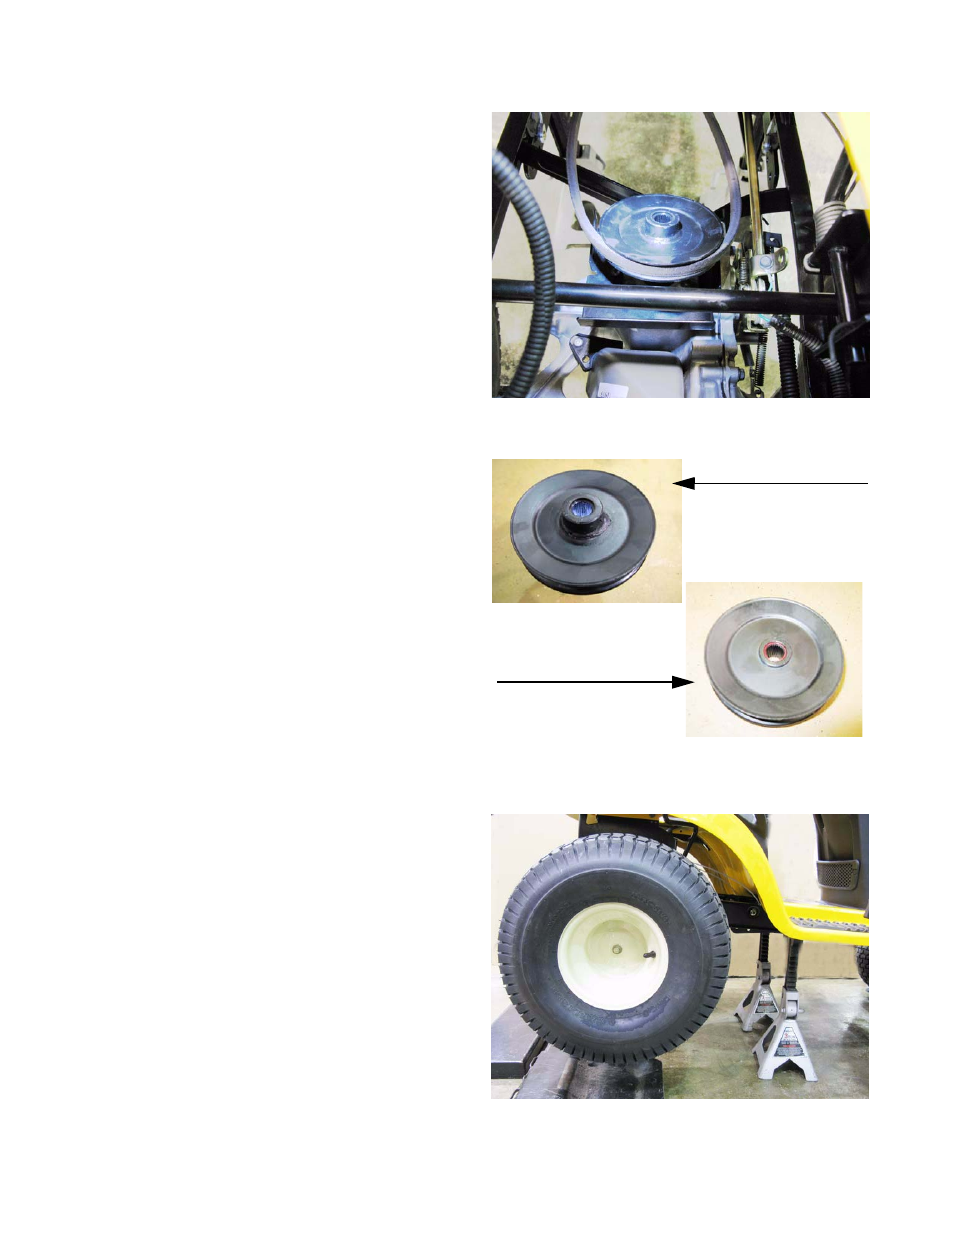 Cub Cadet SLTX1000 Series User Manual | Page 82 / 278 | Also